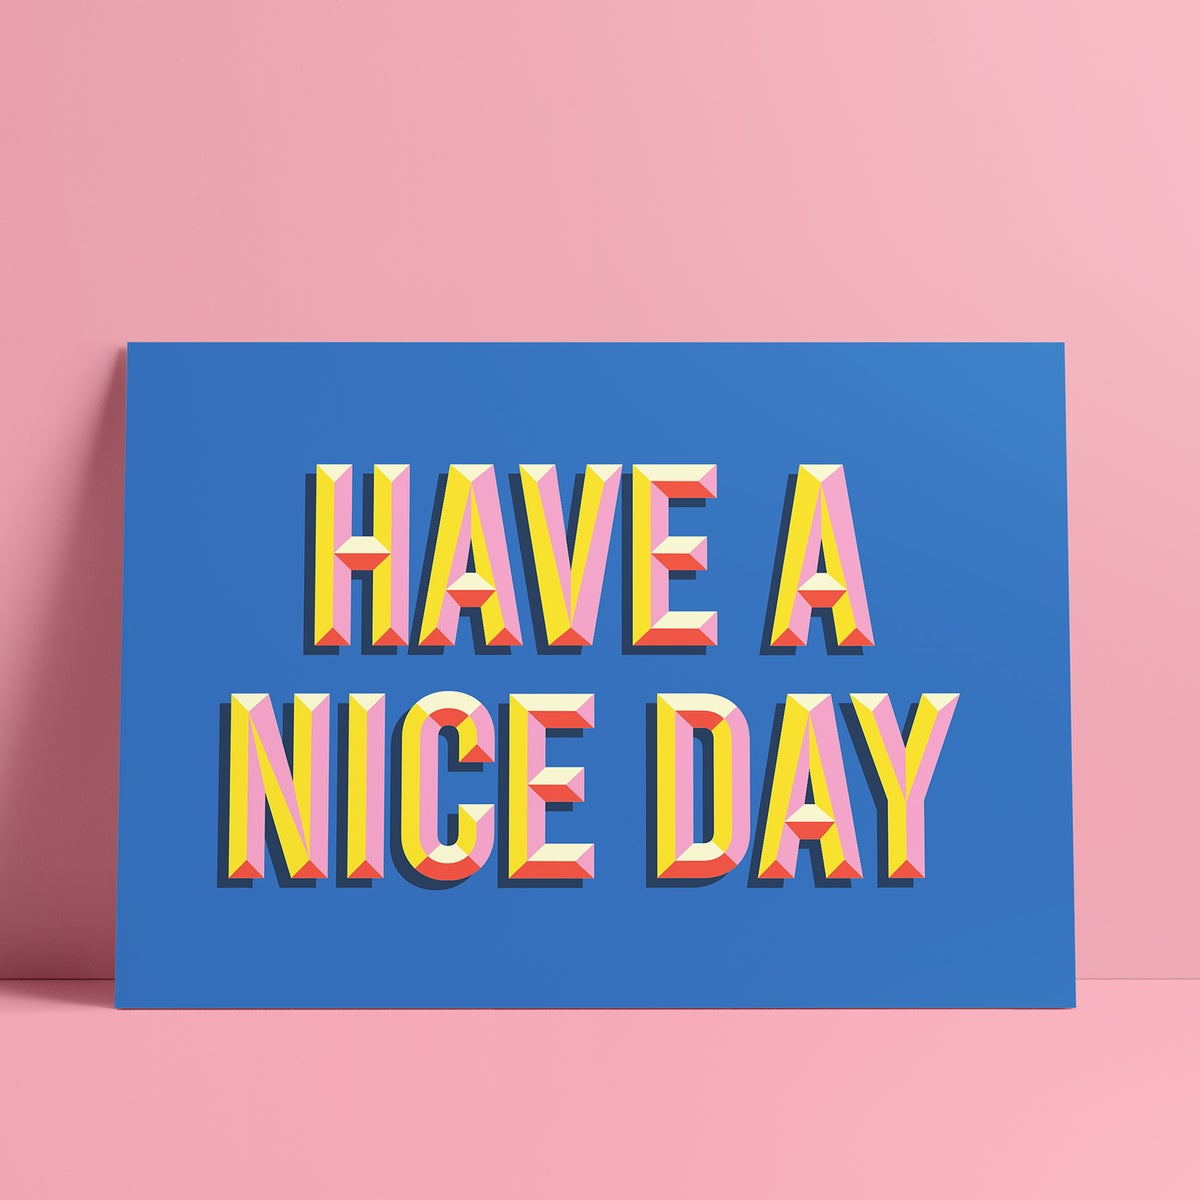 Have A Nice Day - A3 print